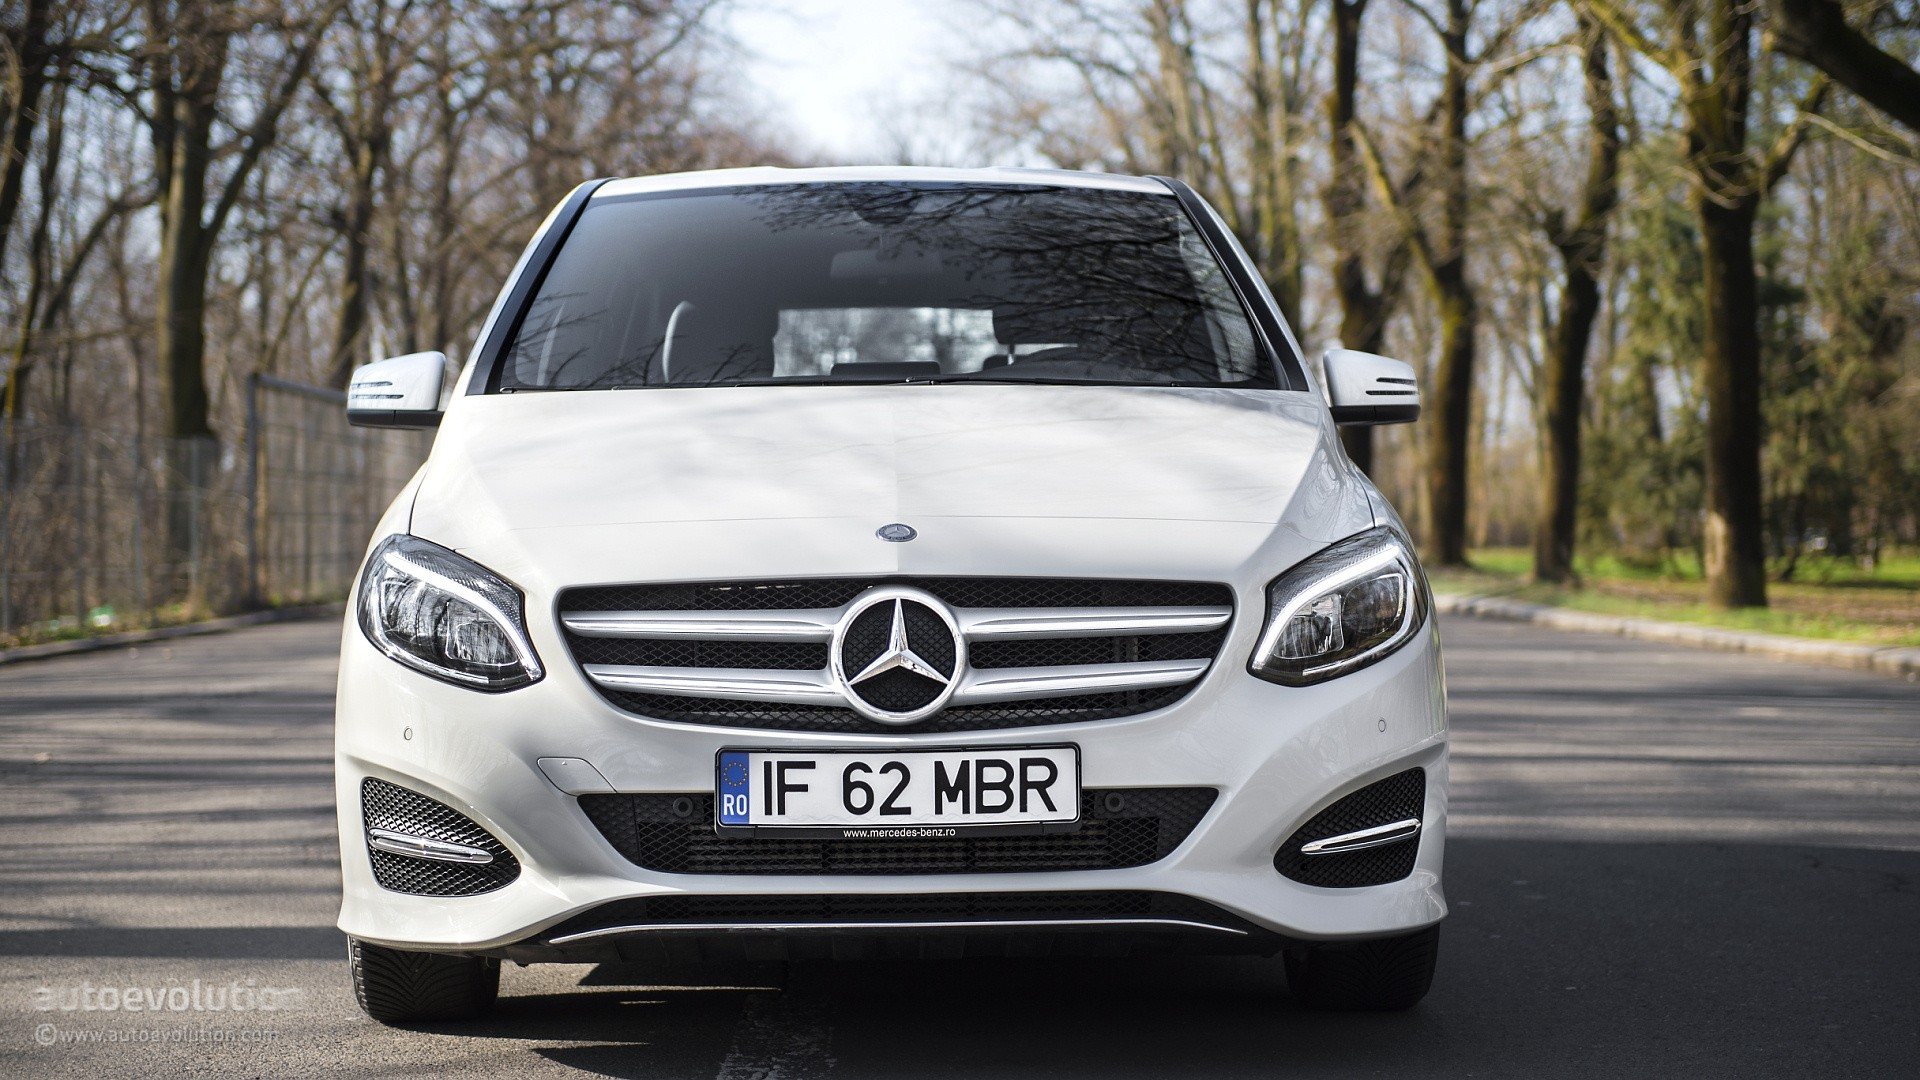 2015 mercedes benz b class review autoevolution for Mercedes benz class 2015